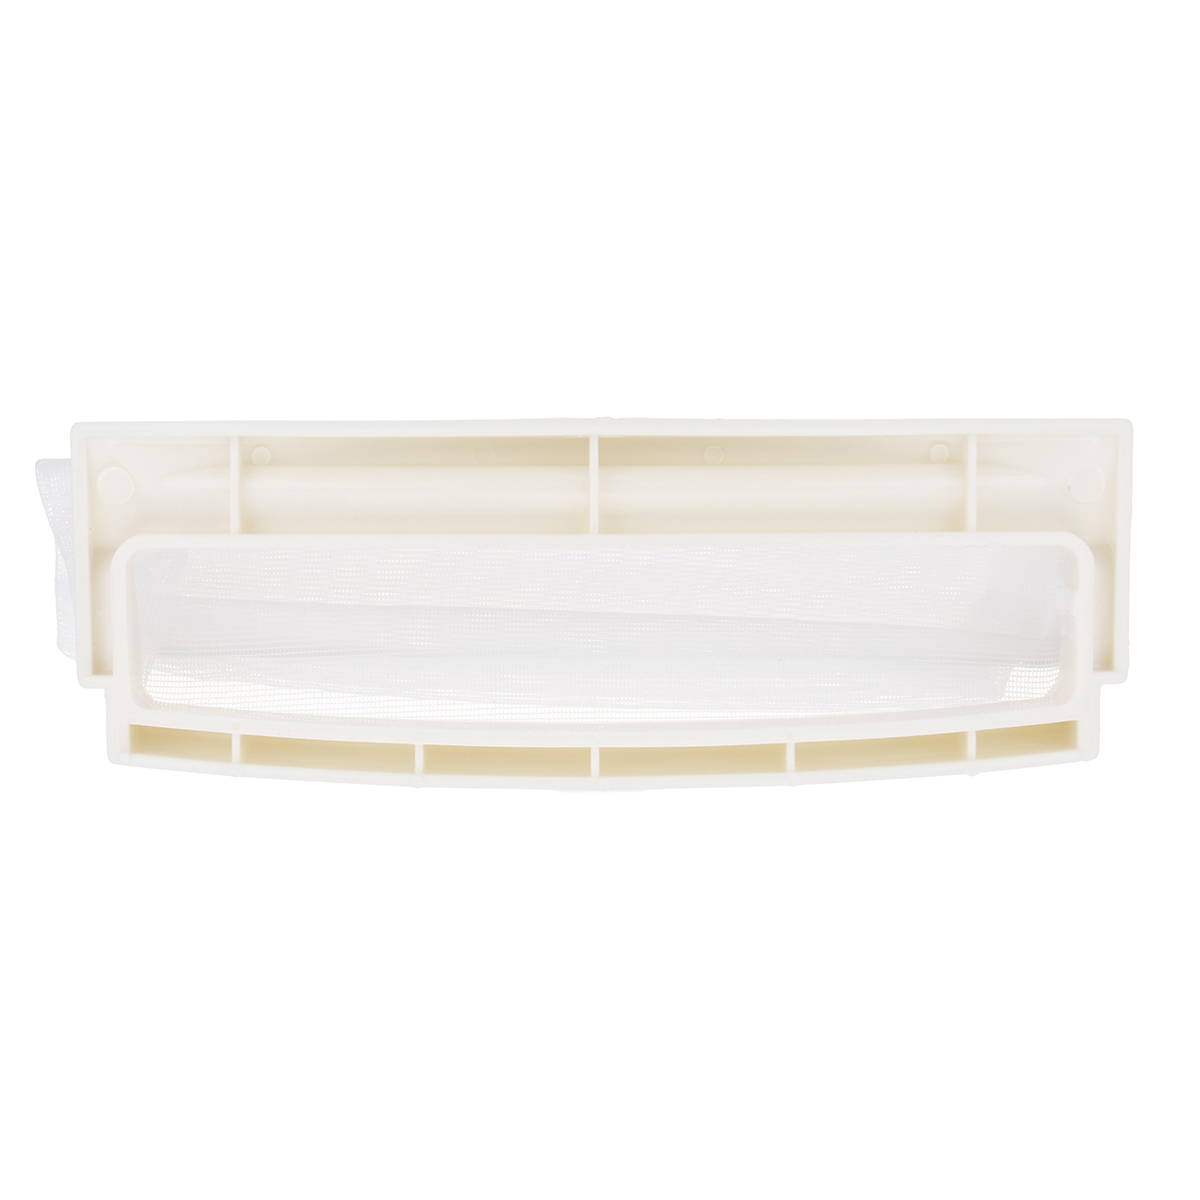 Washing Machine Lint Filter Sieve Part Washer Filter Net For Panasonic TCL